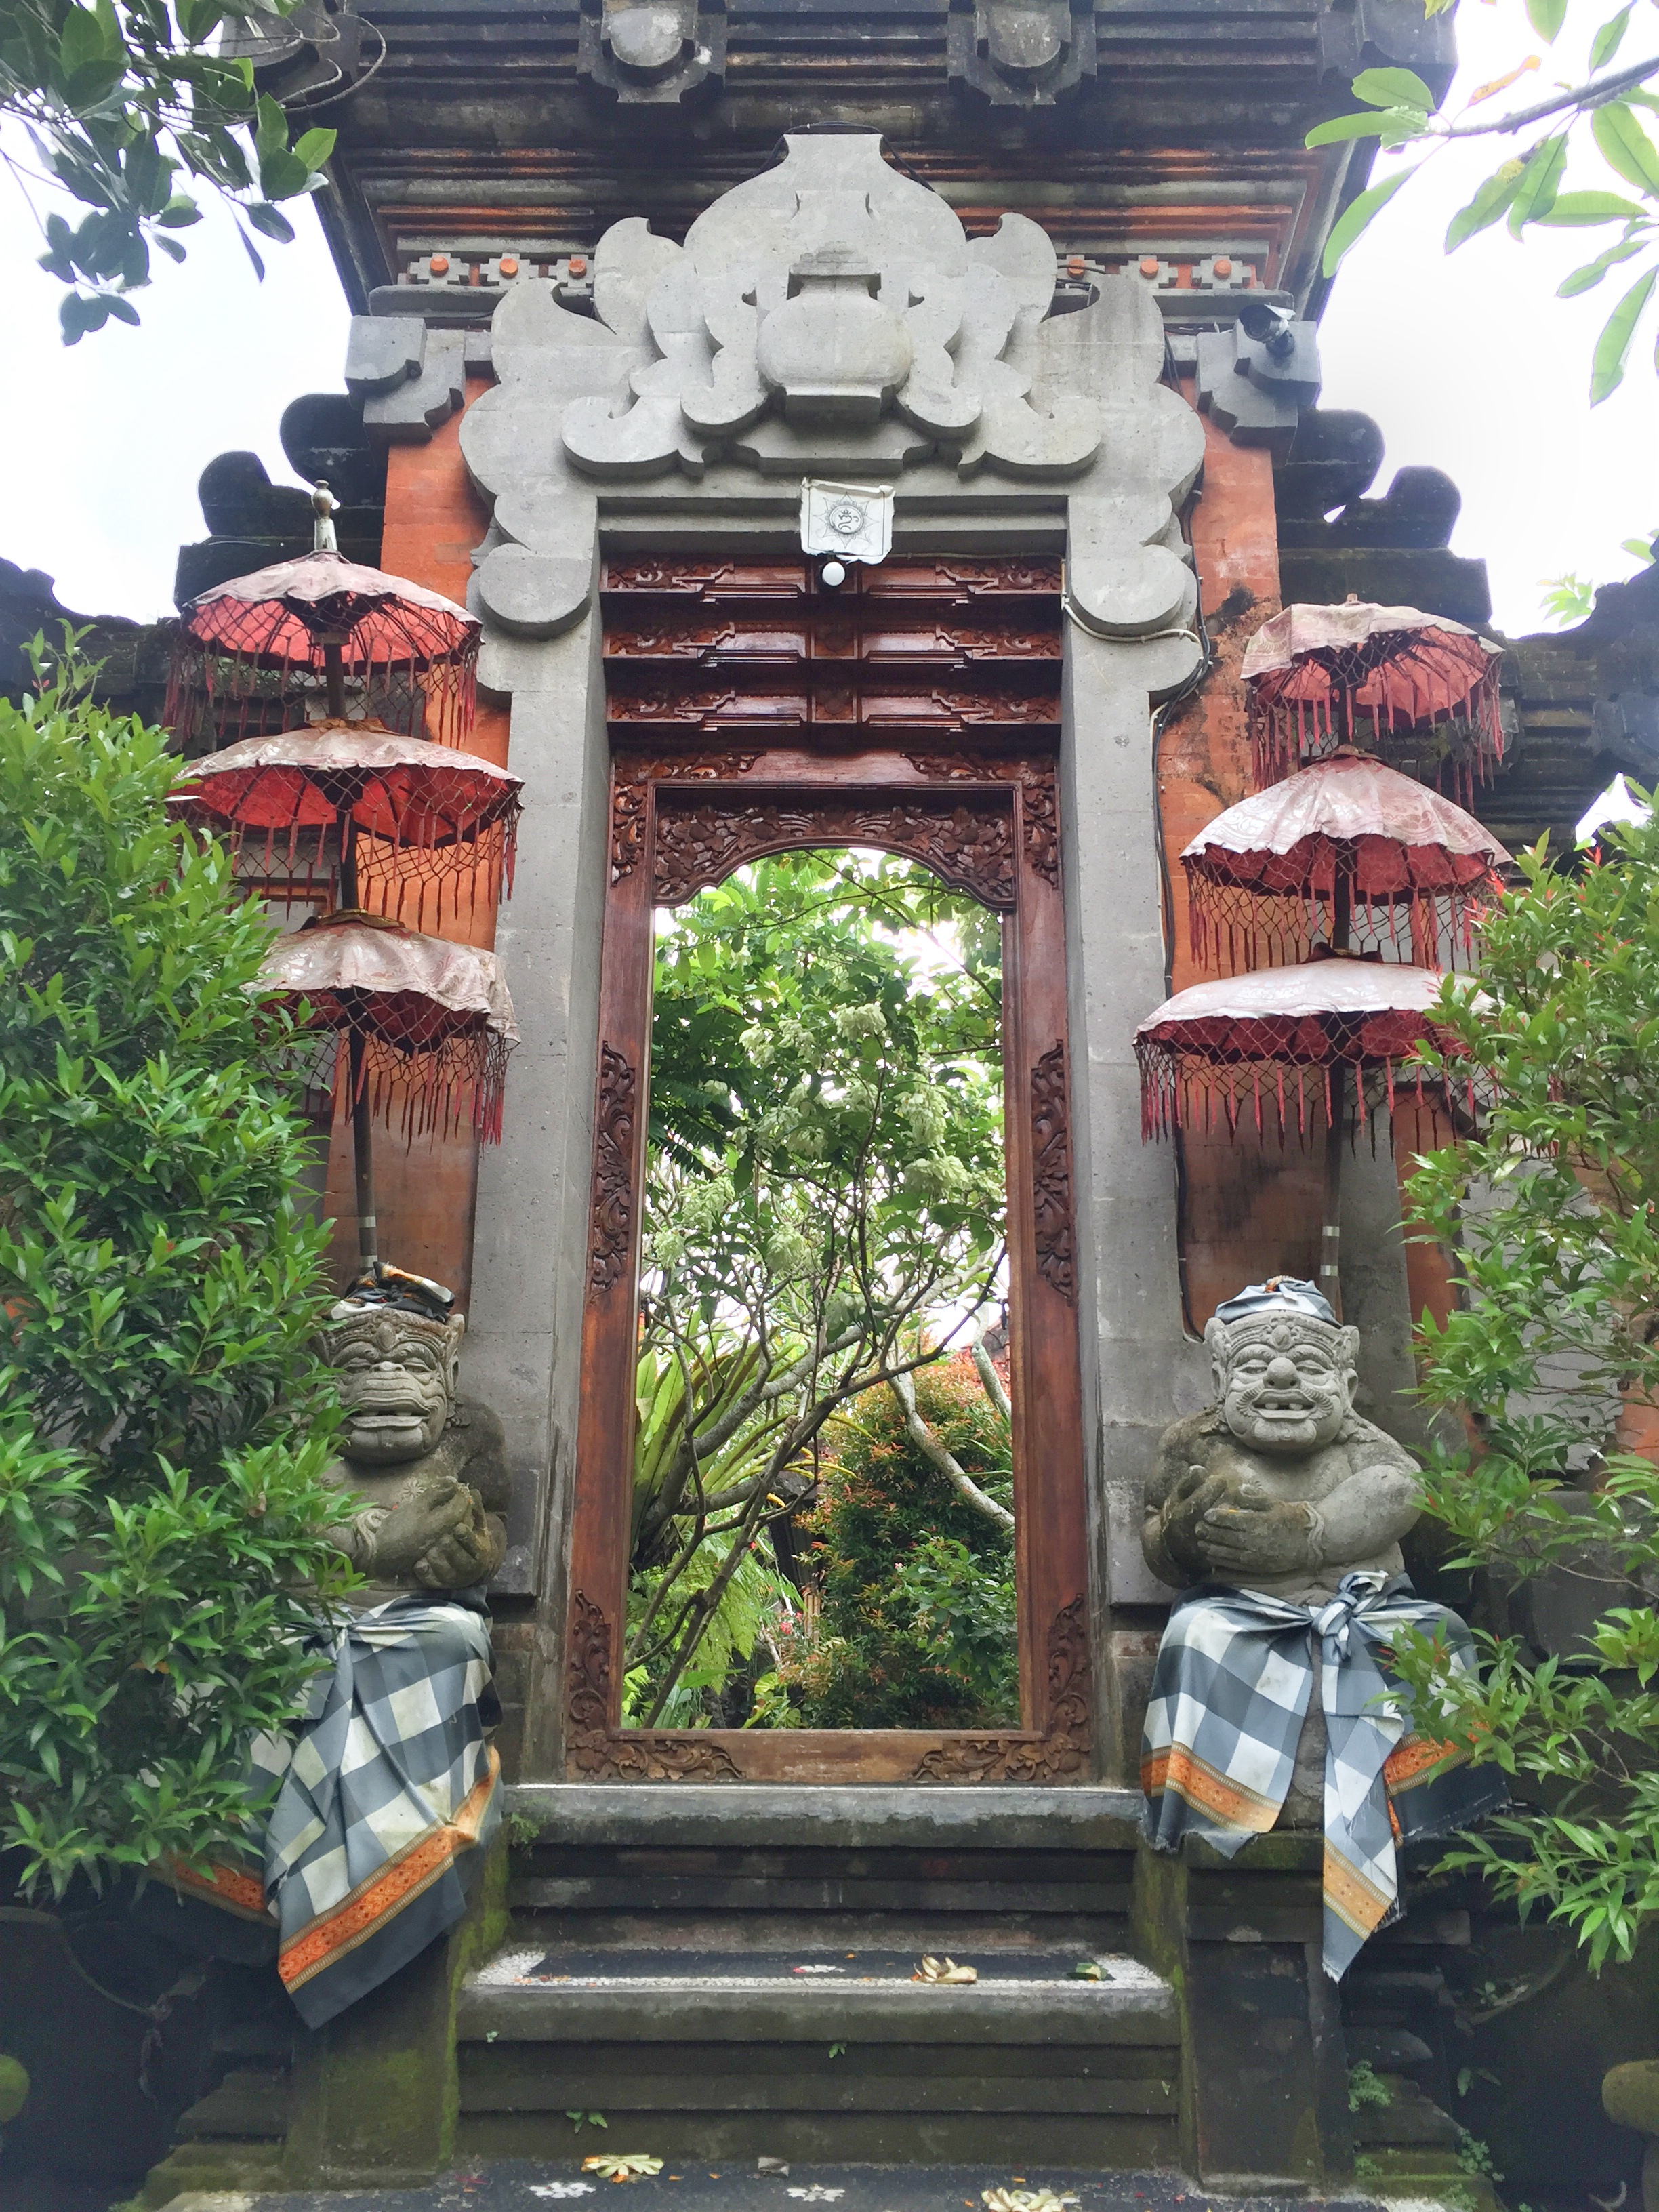 Temples and statues | EAT.PRAY.MOVE Yoga | Bali, Indonesia